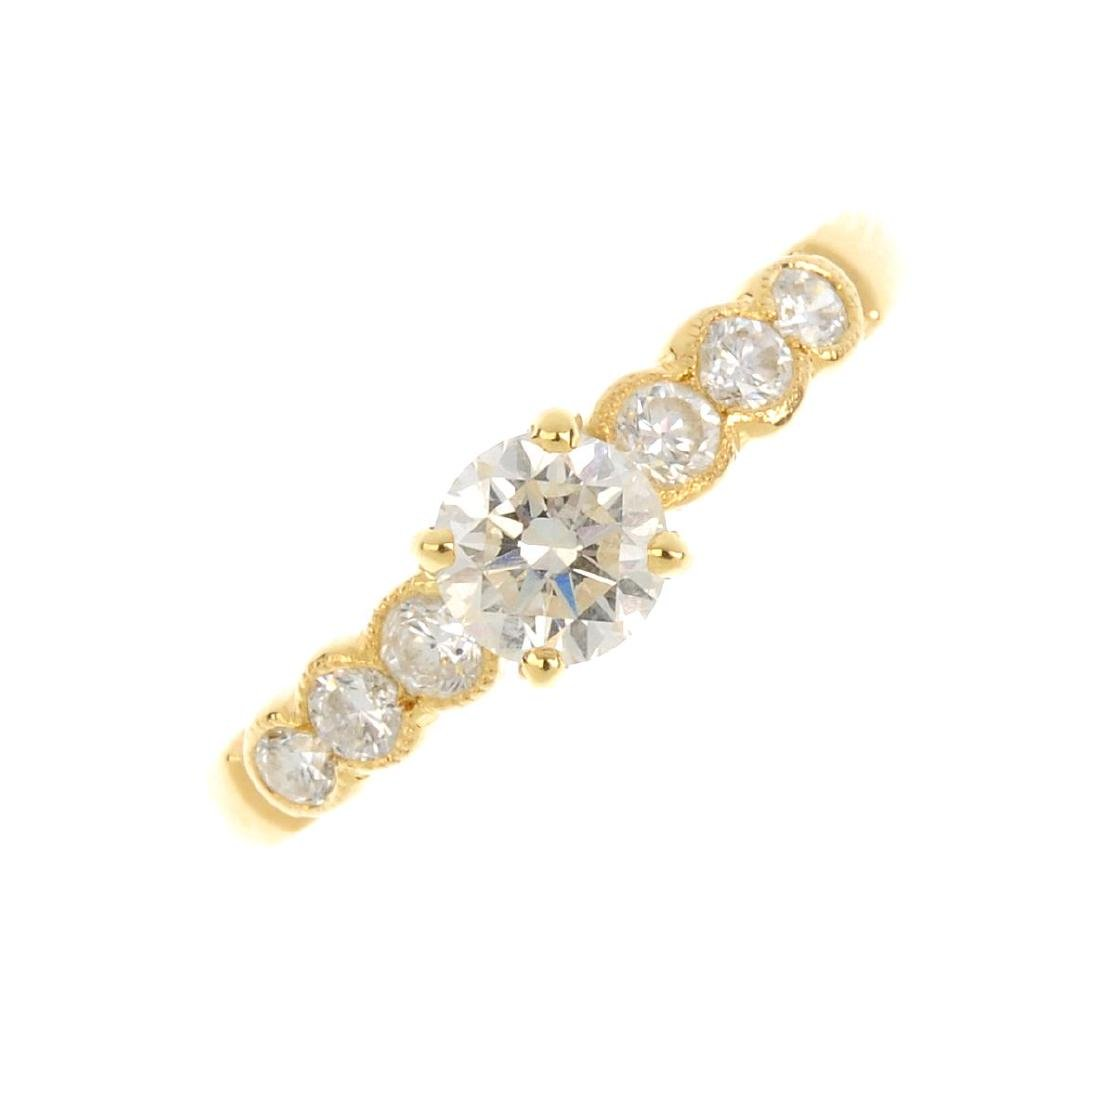 A 18ct gold diamond dress ring. Designed as a